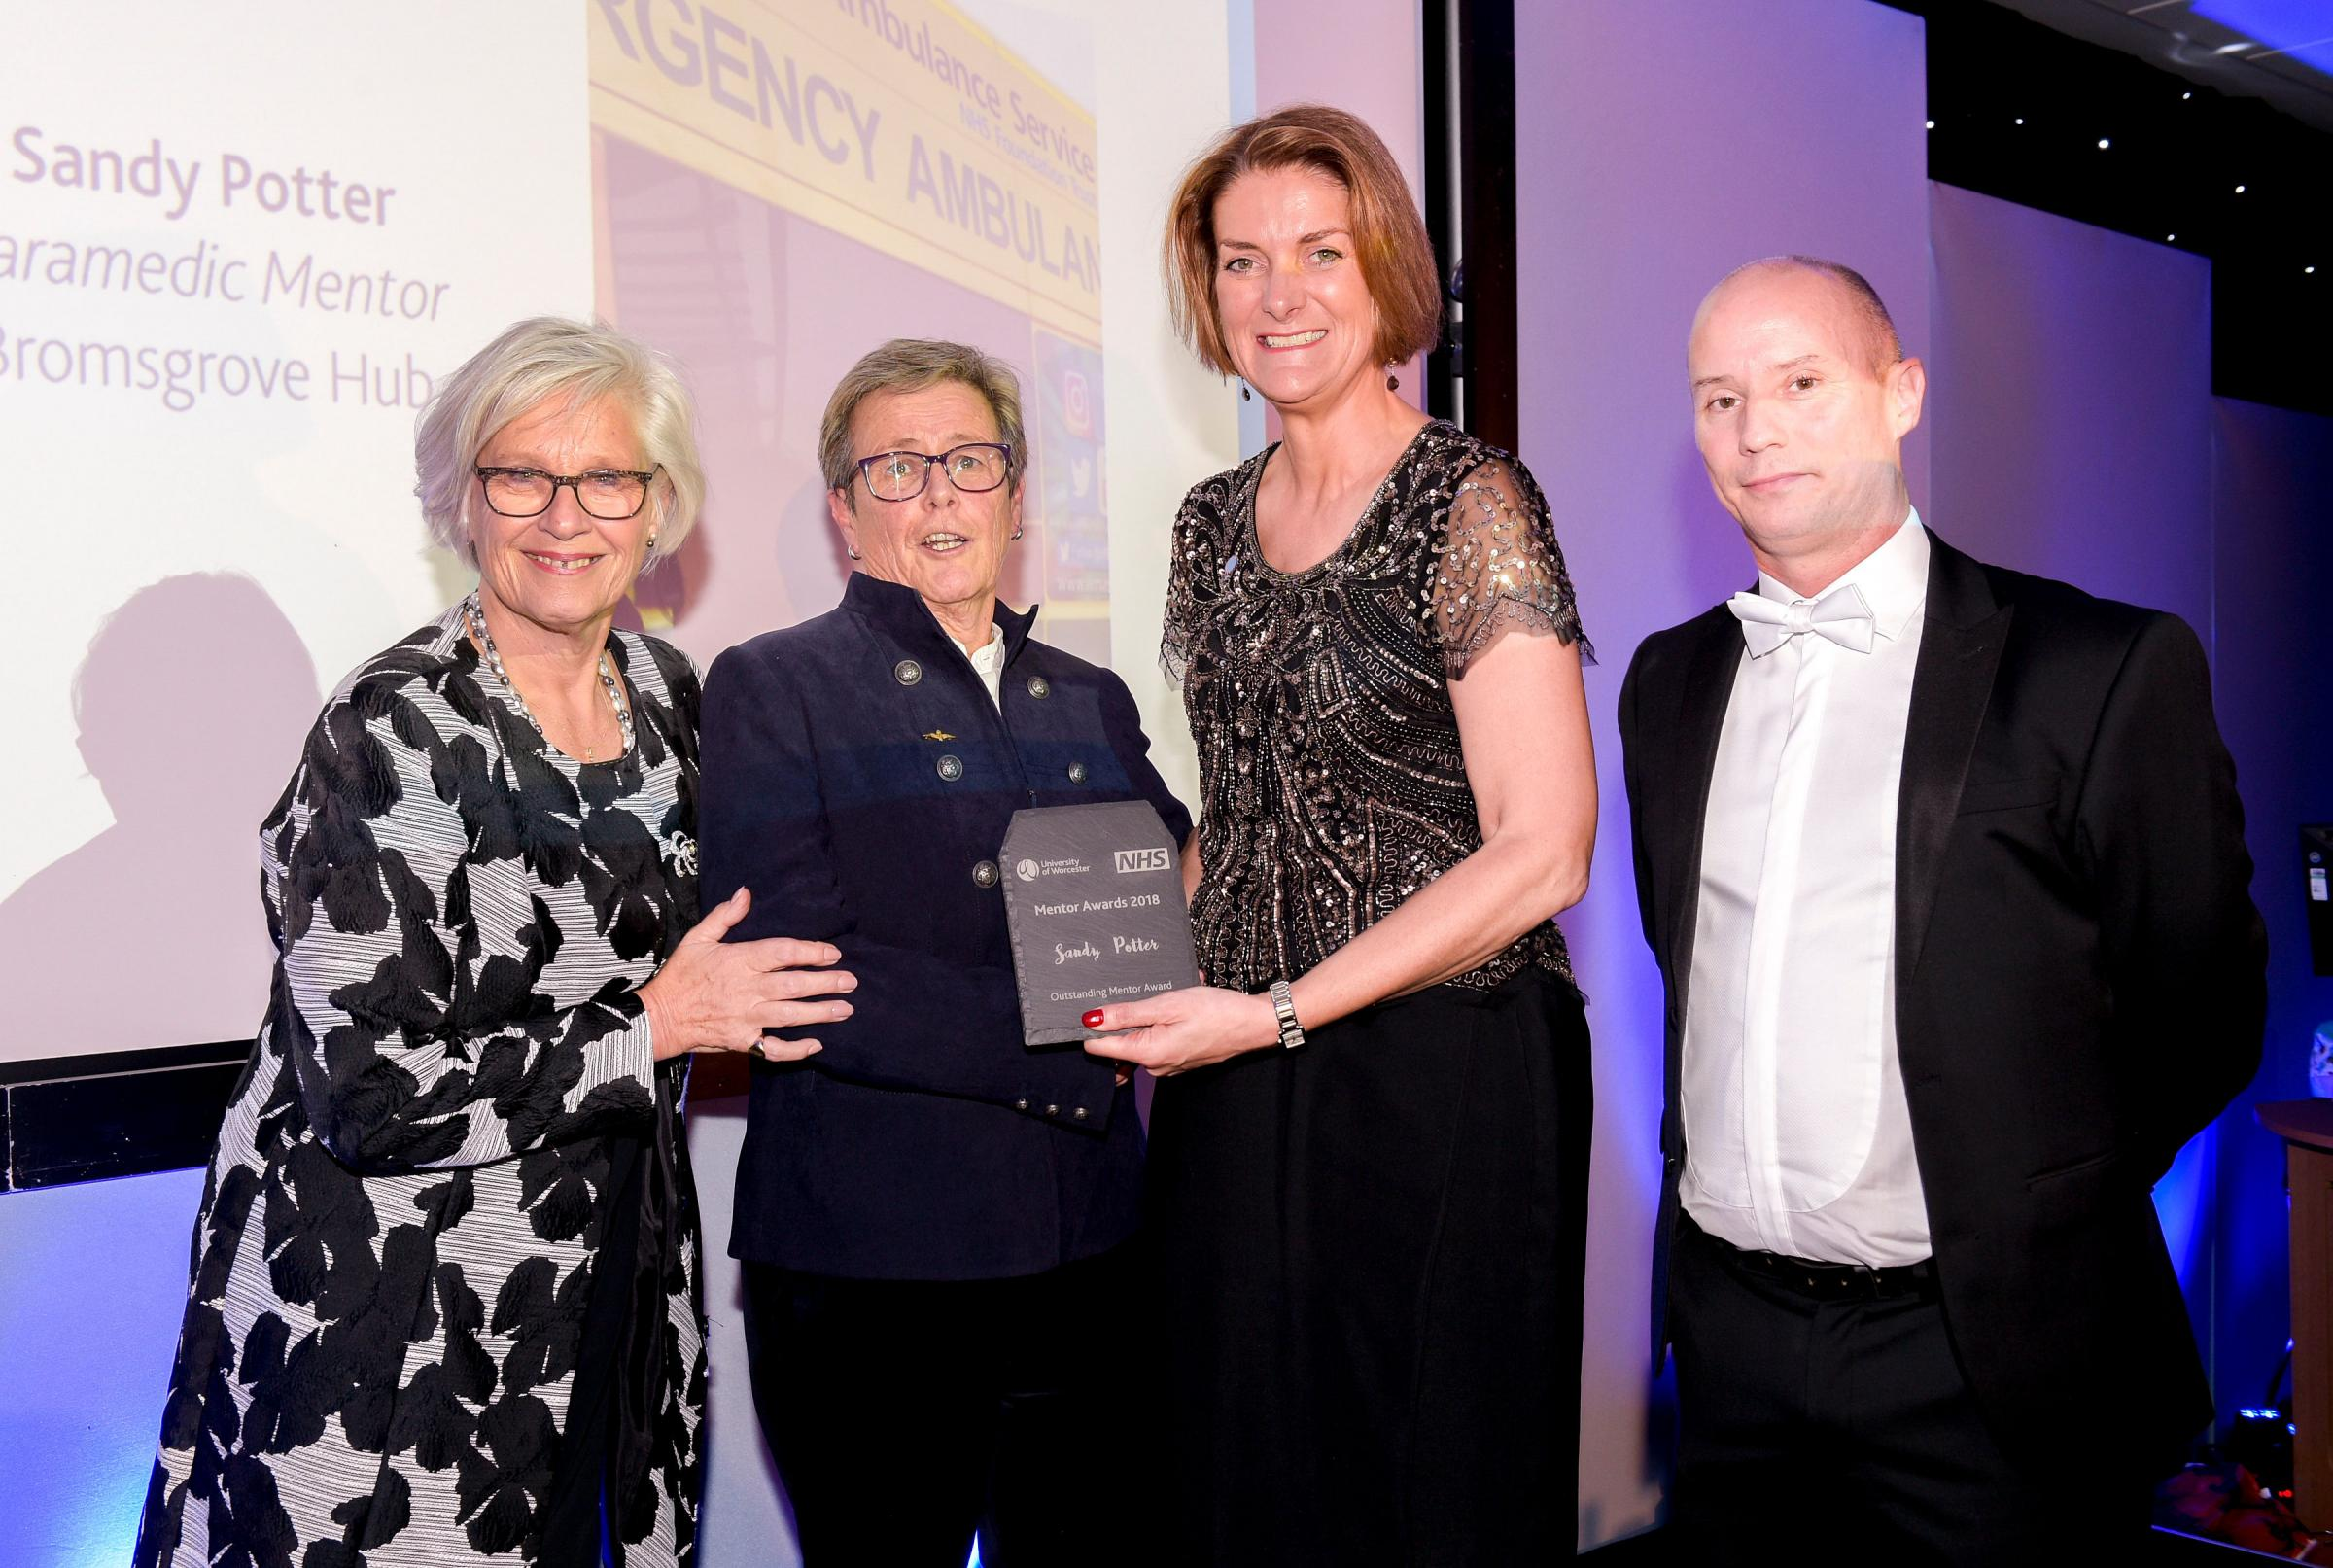 Redditch paramedic honoured for dedicating her life to helping others